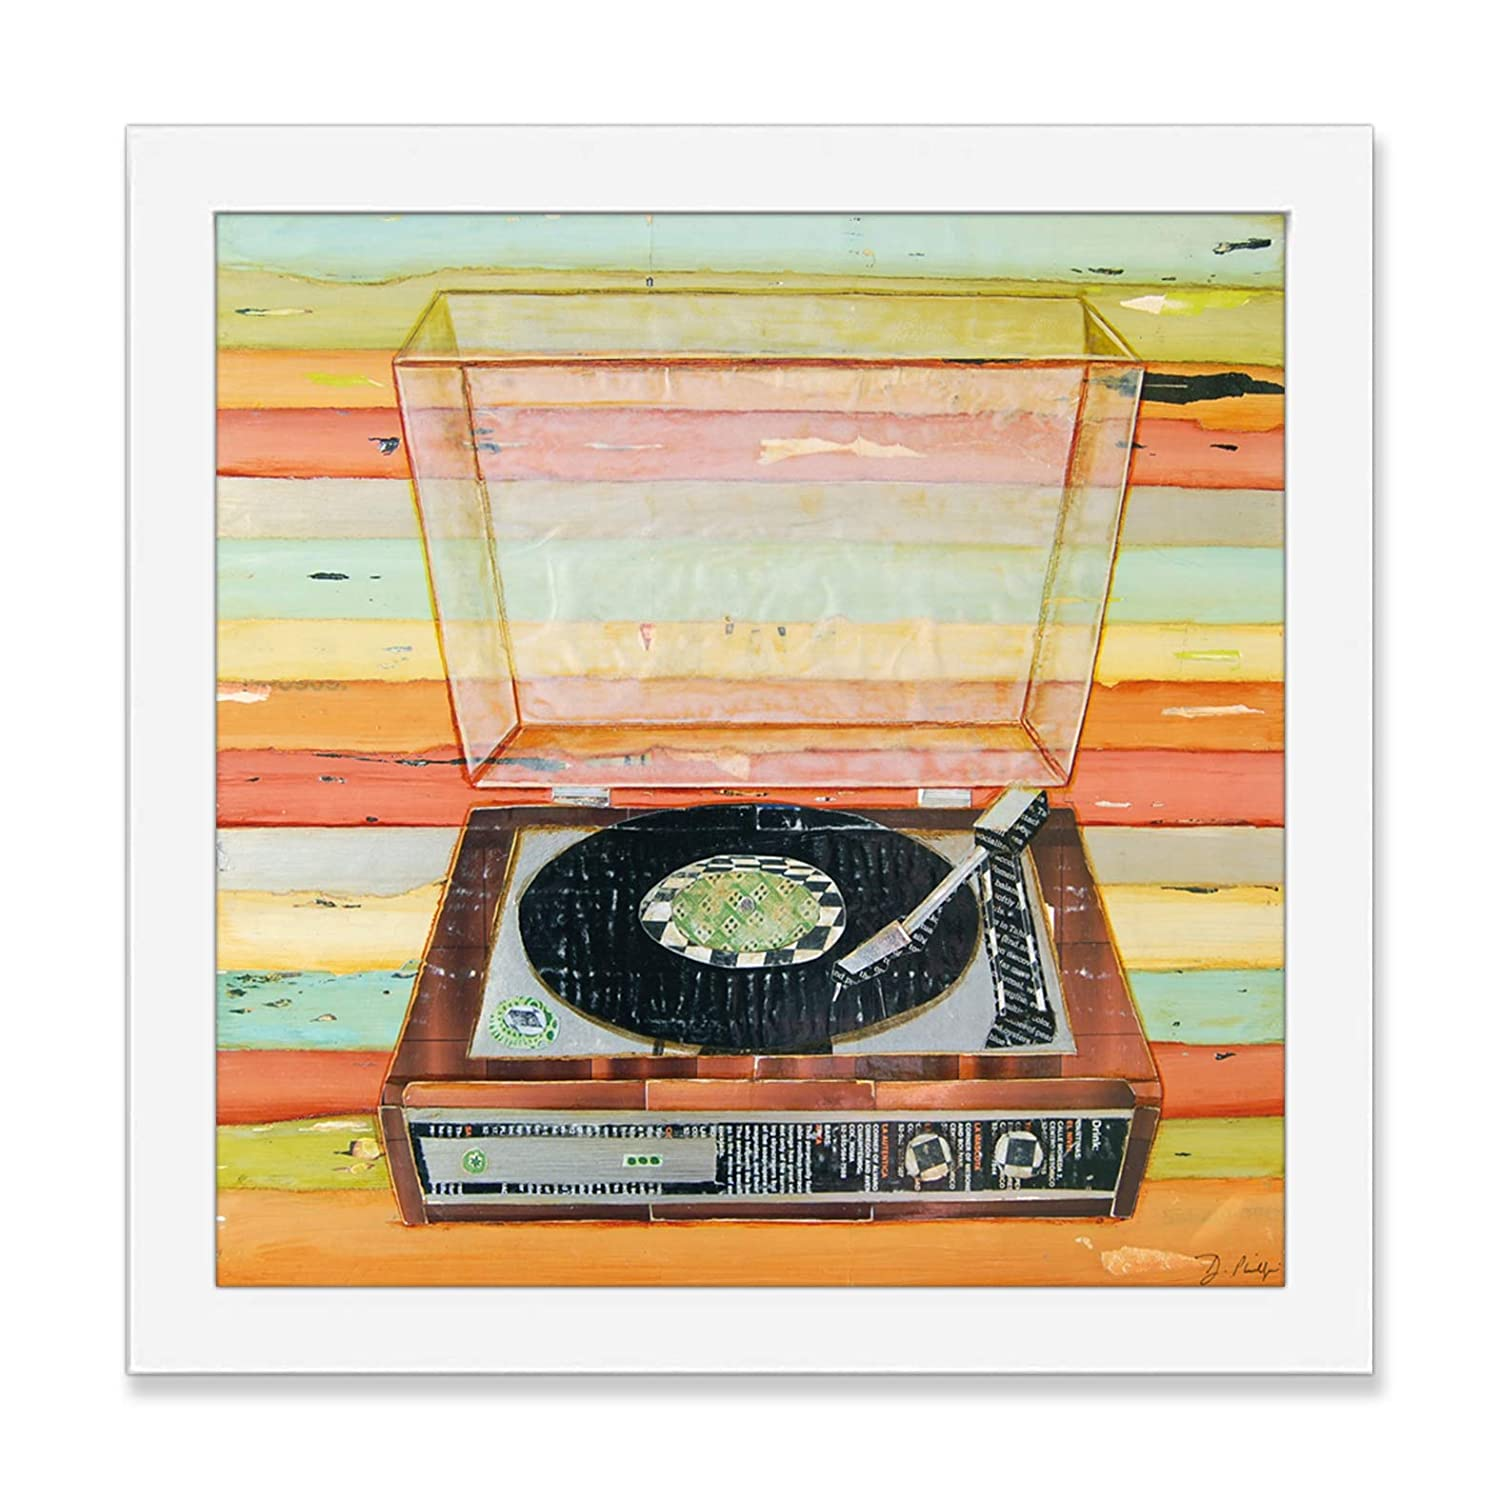 Put a Needle on the Record - Danny Phillips Art Print, Unframed, Vintage Retro Record Player Artwork, Musical Mixed Media Collage Painting, All Sizes